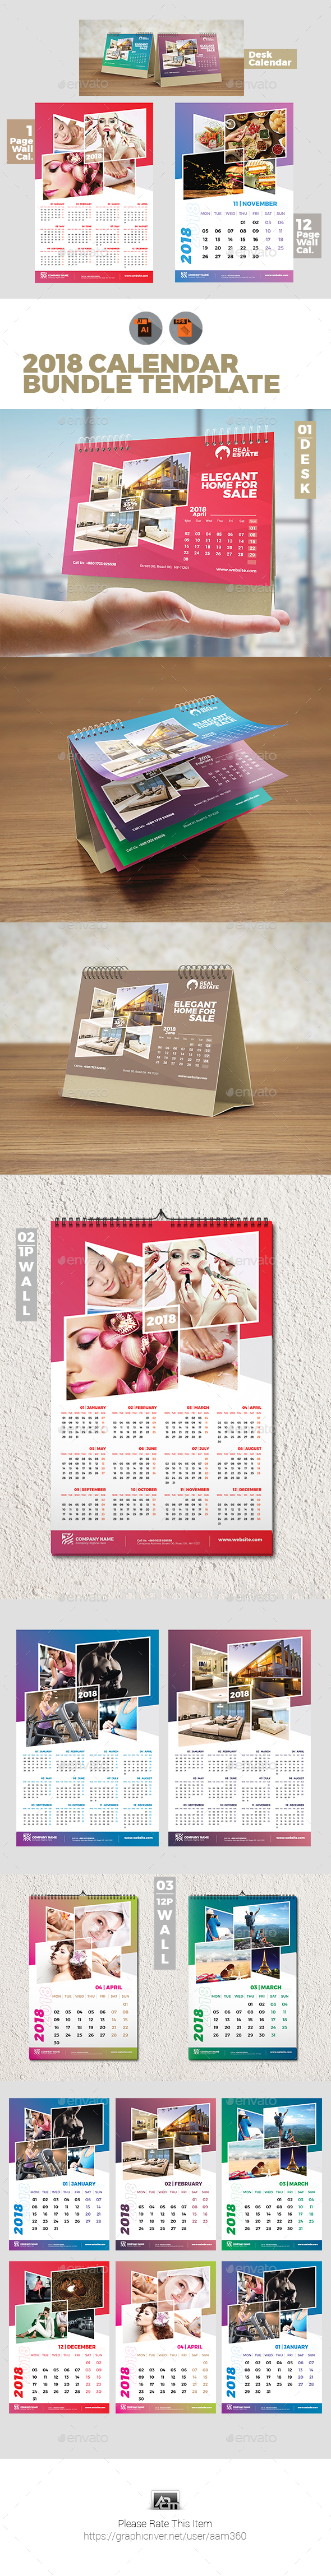 2018 Calendar Bundle Templates - Calendars Stationery